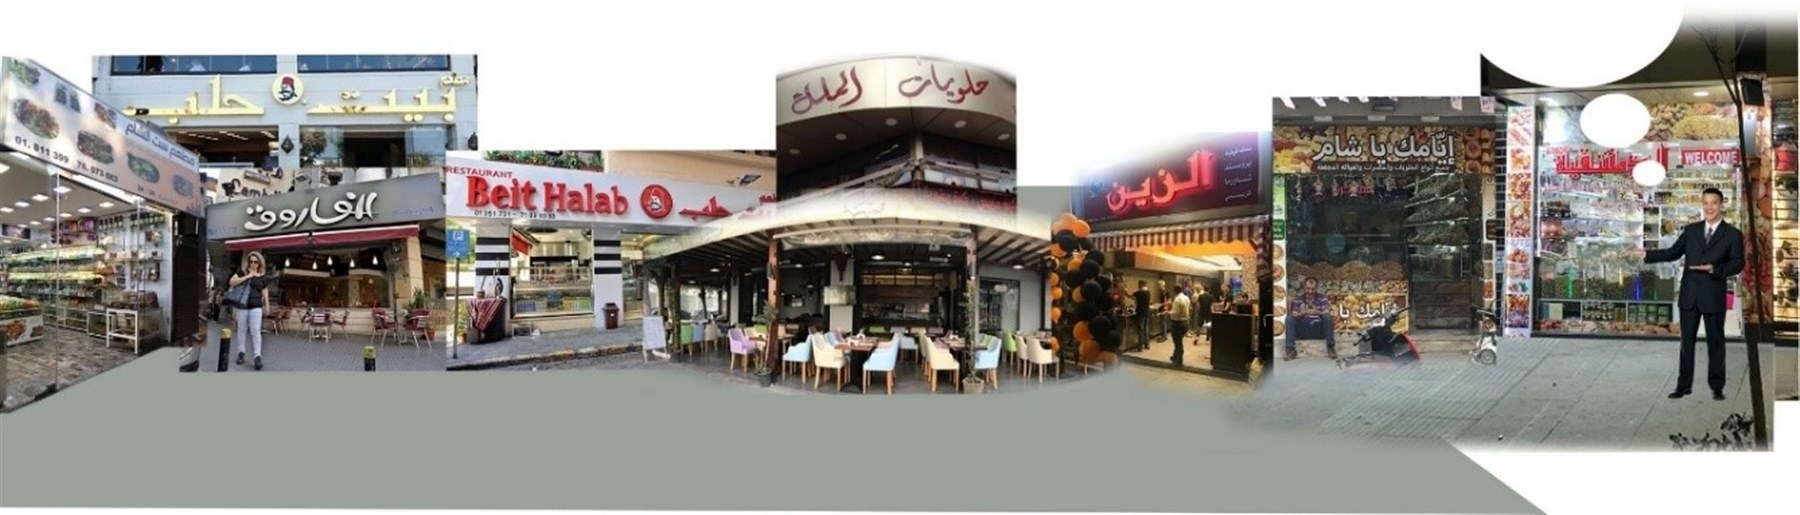 Syrian-Owned Businesses in the City